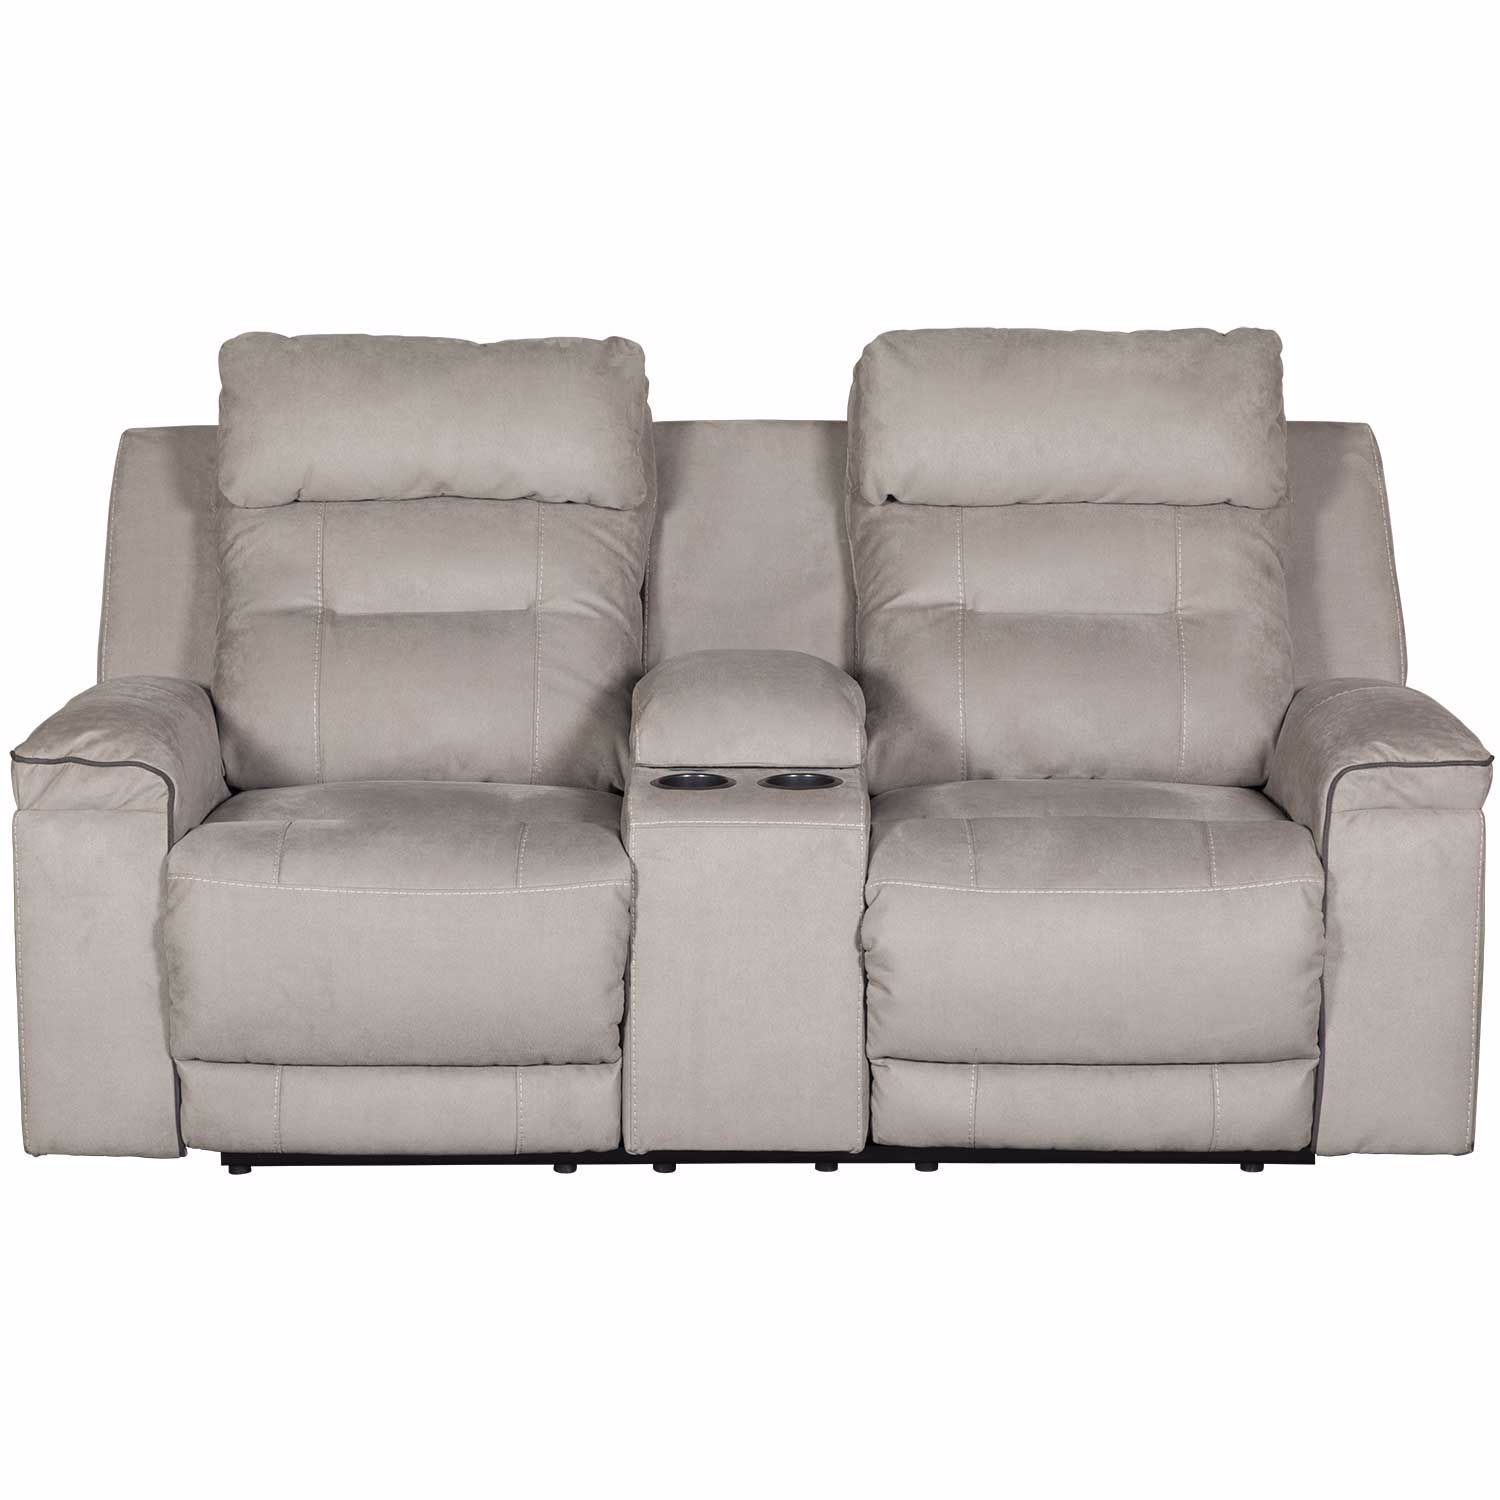 Trampton Power Reclining Console Loveseat With Headrest